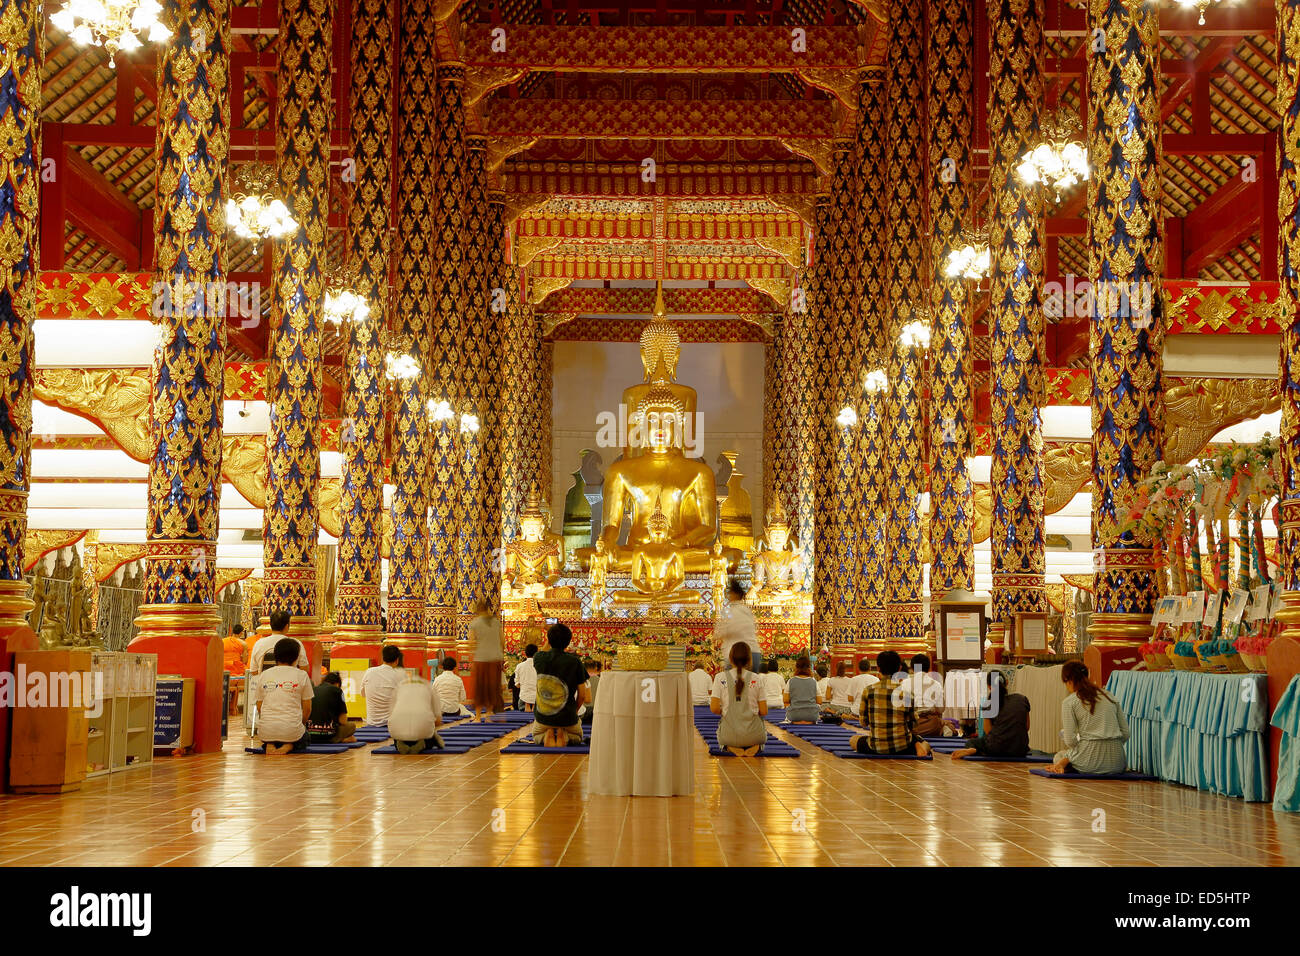 Buddha statue and worshipers, prayer hall, Wat Suan Dok, Chiang Mai, Thailand - Stock Image